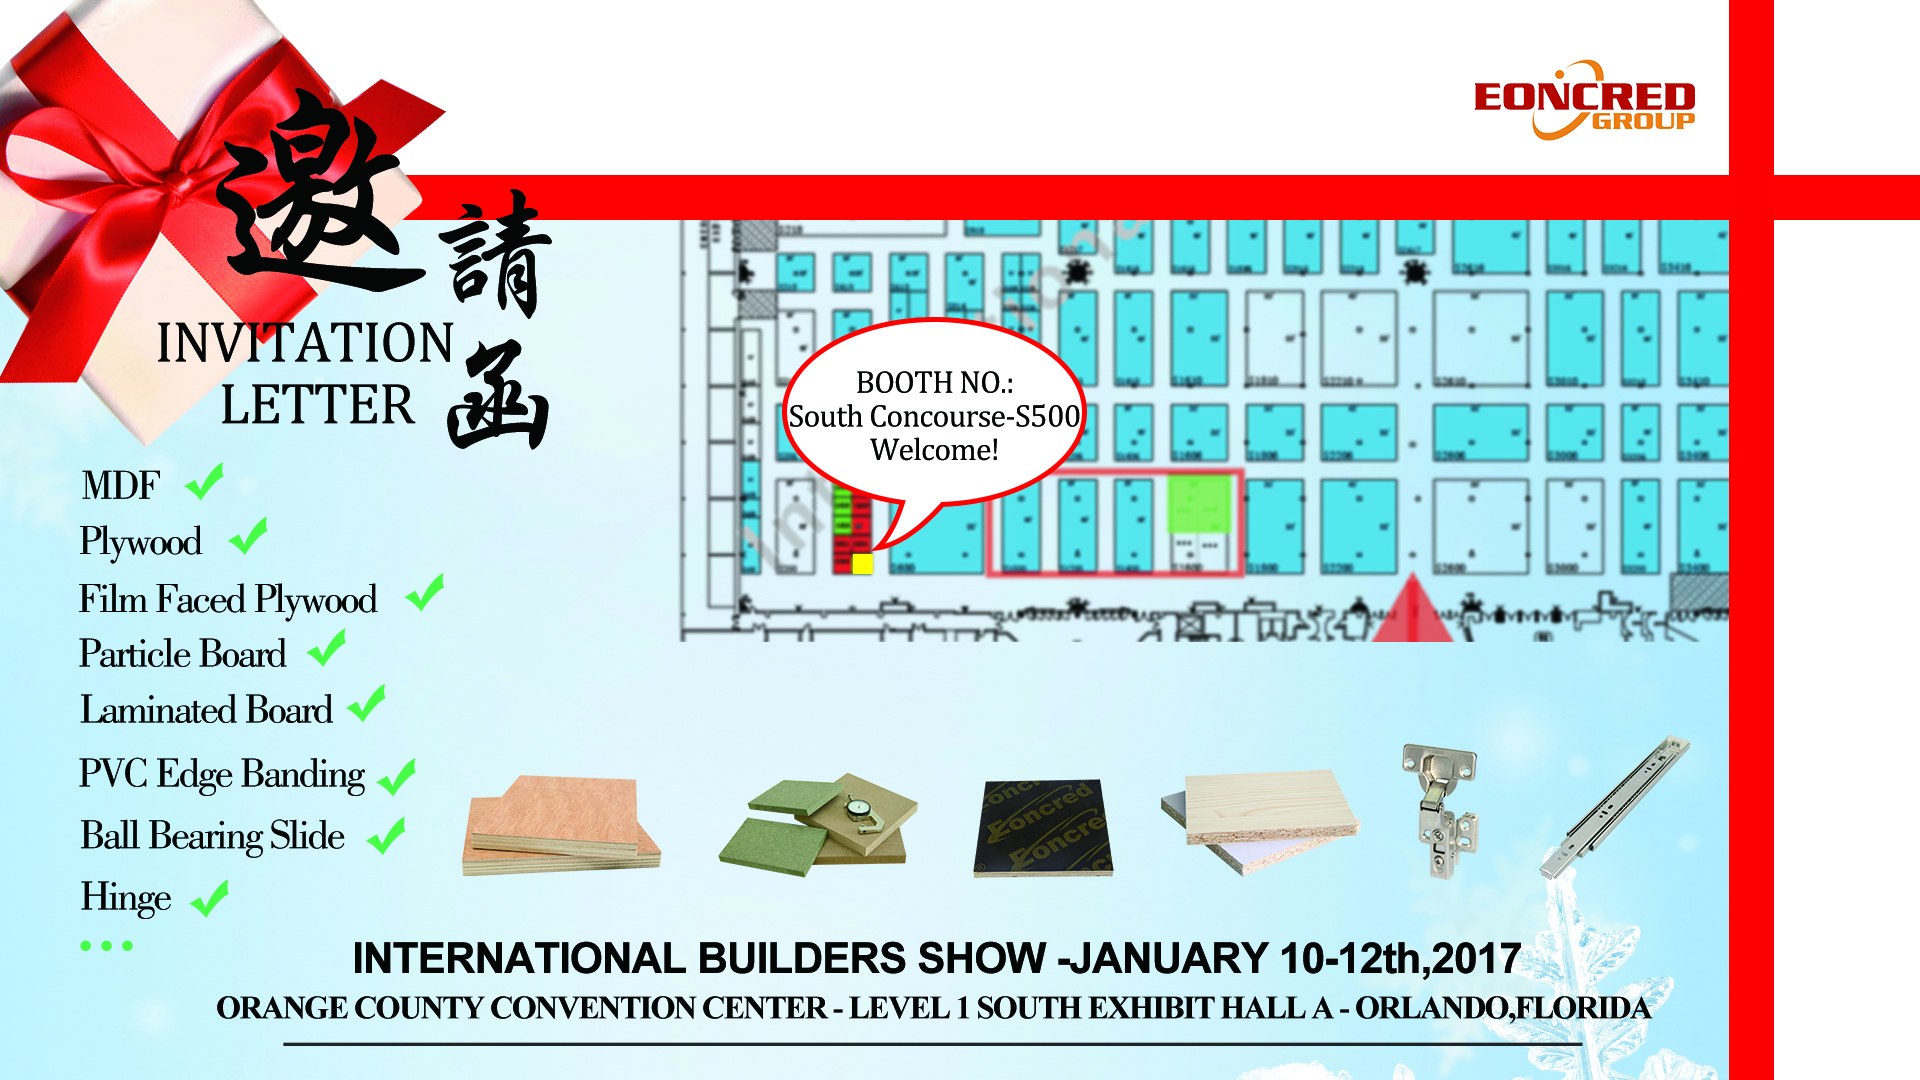 2017 INTERNATIONAL BUILDERS SHOW